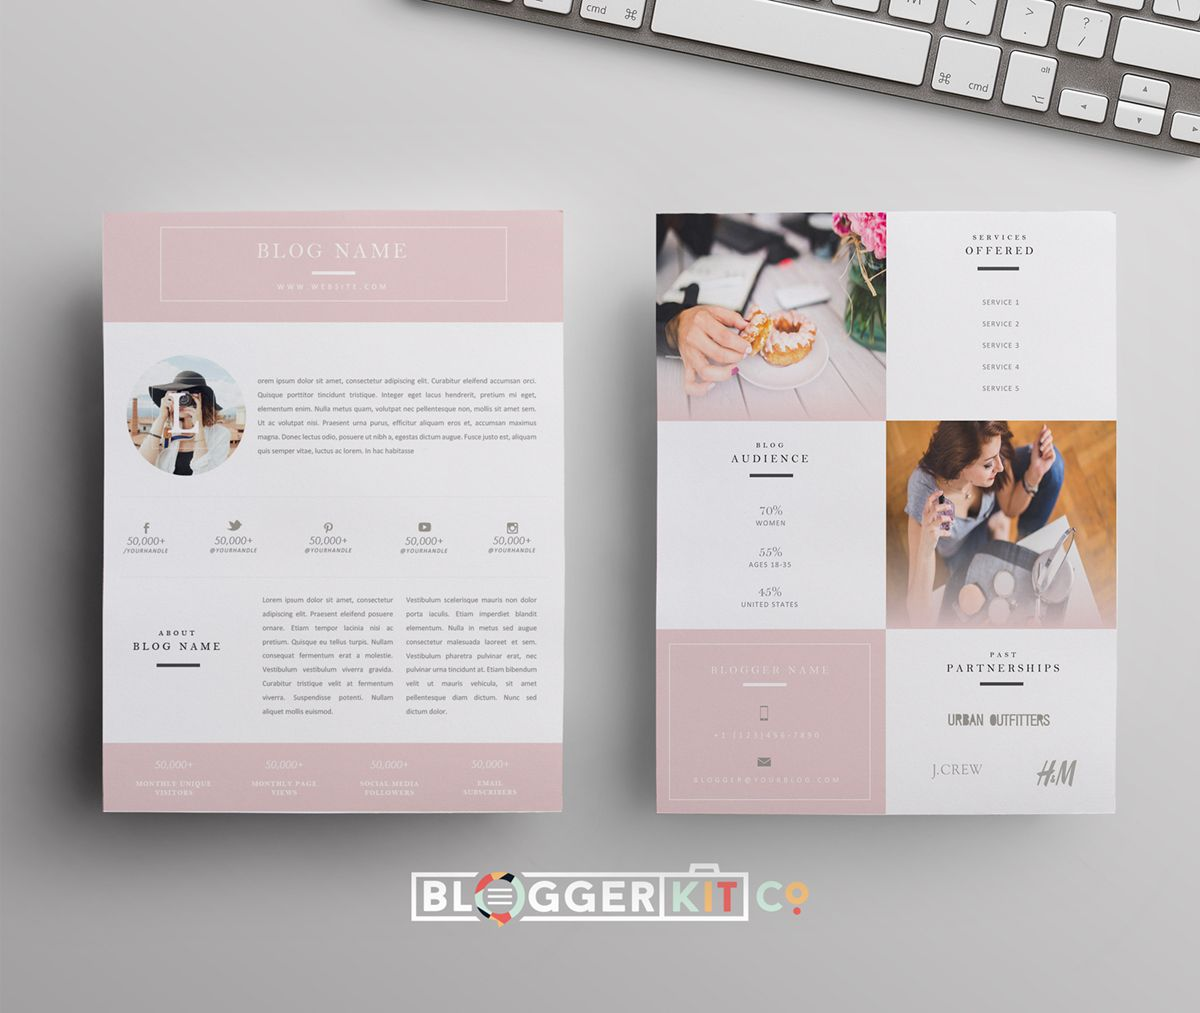 Word 2007 Resume Template Beauty Blogger Pink  Media Kit Template Media Kit And Template